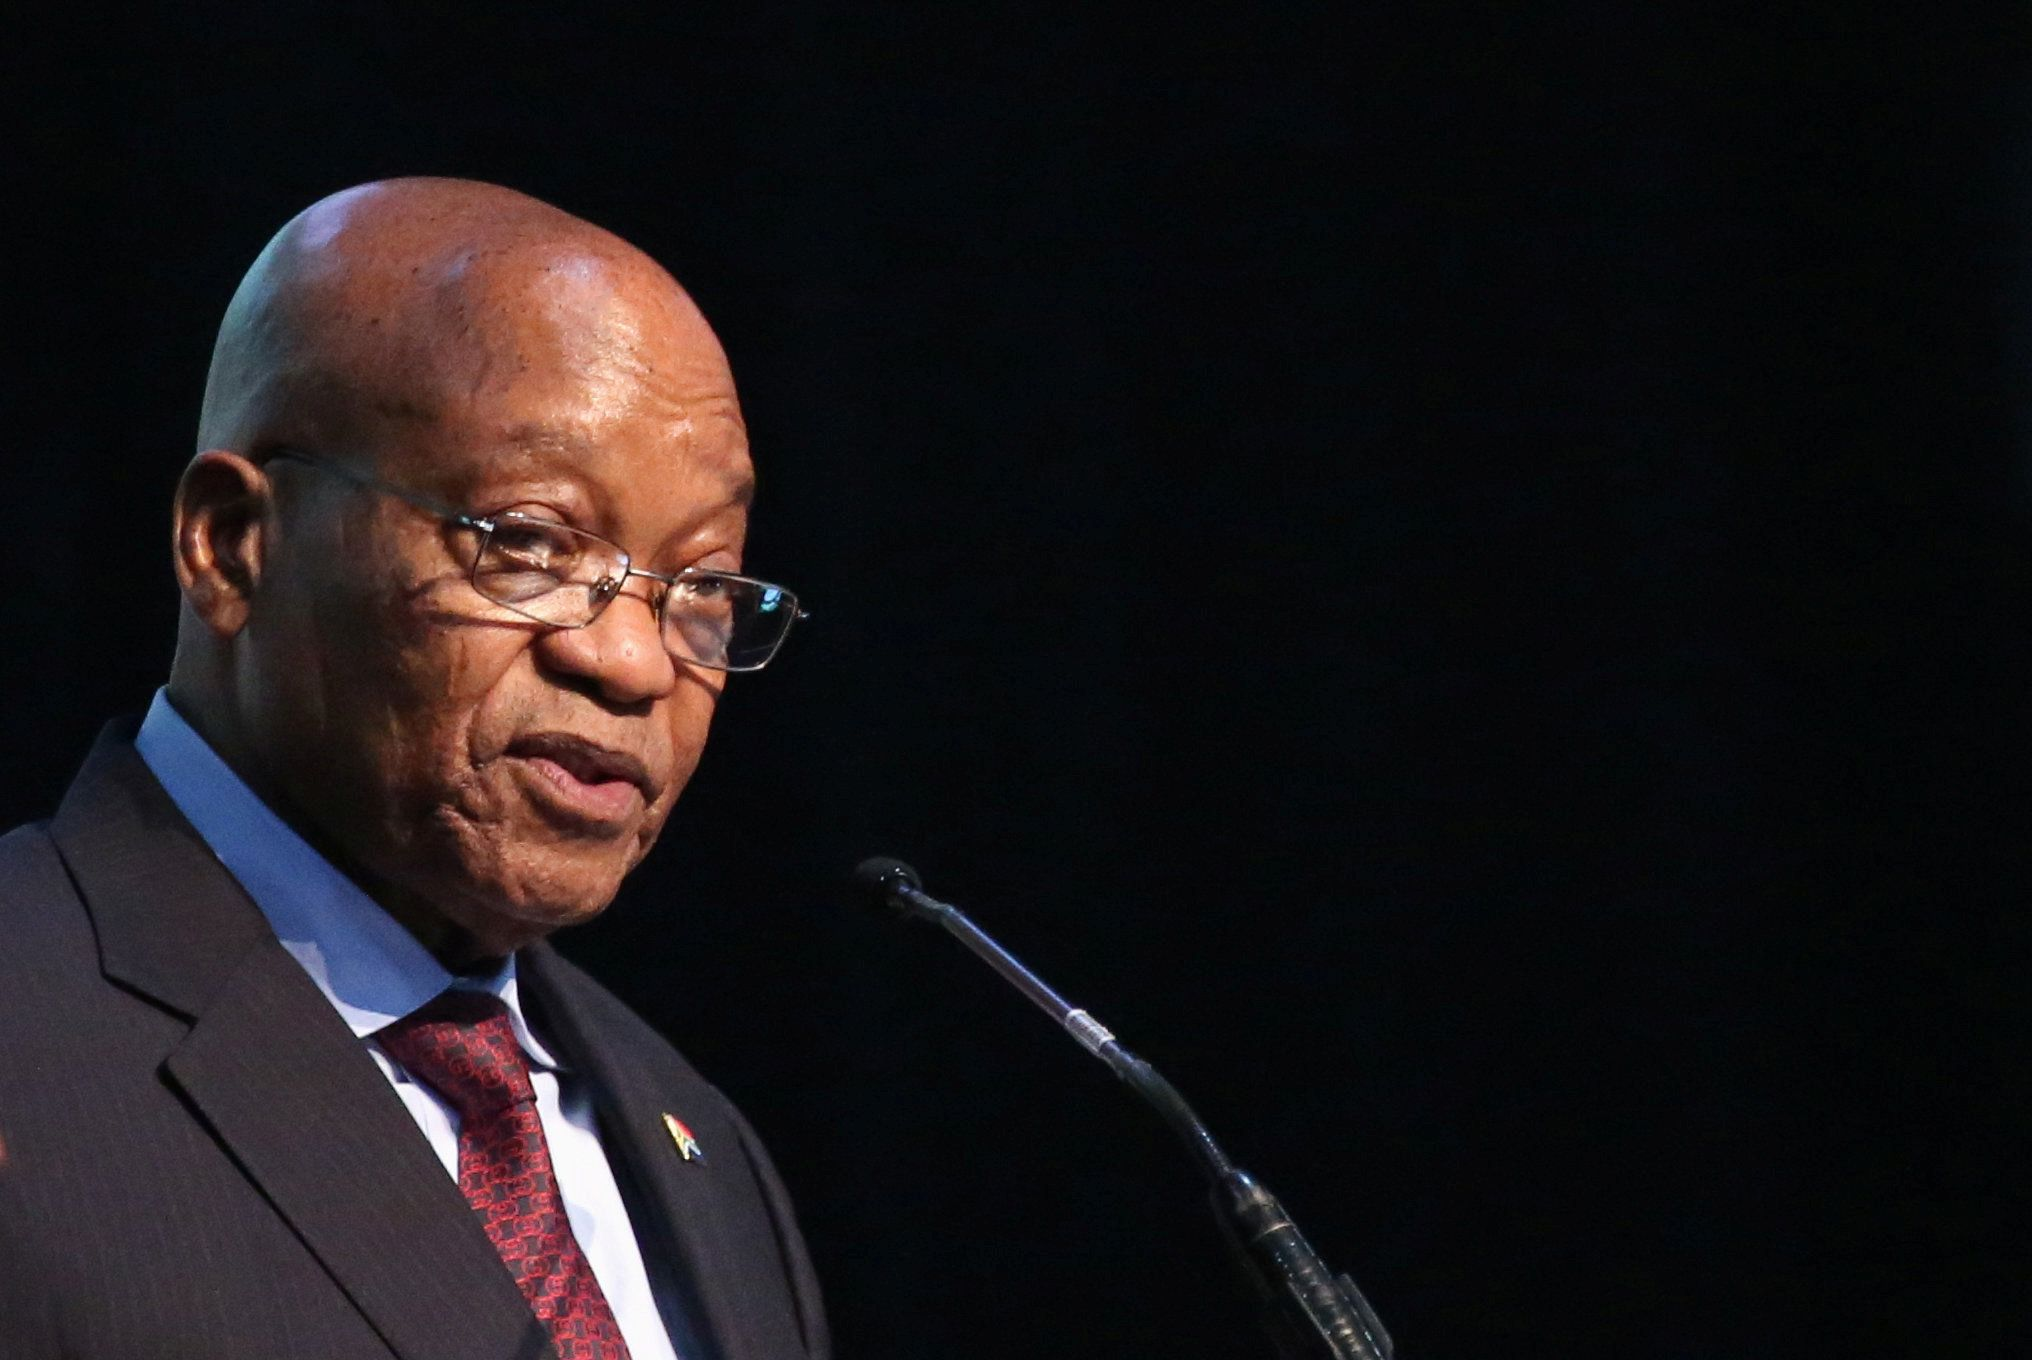 After 13 hours of tense deliberations, the ANC has decided to fire Jacob Zuma as president of South Africa.